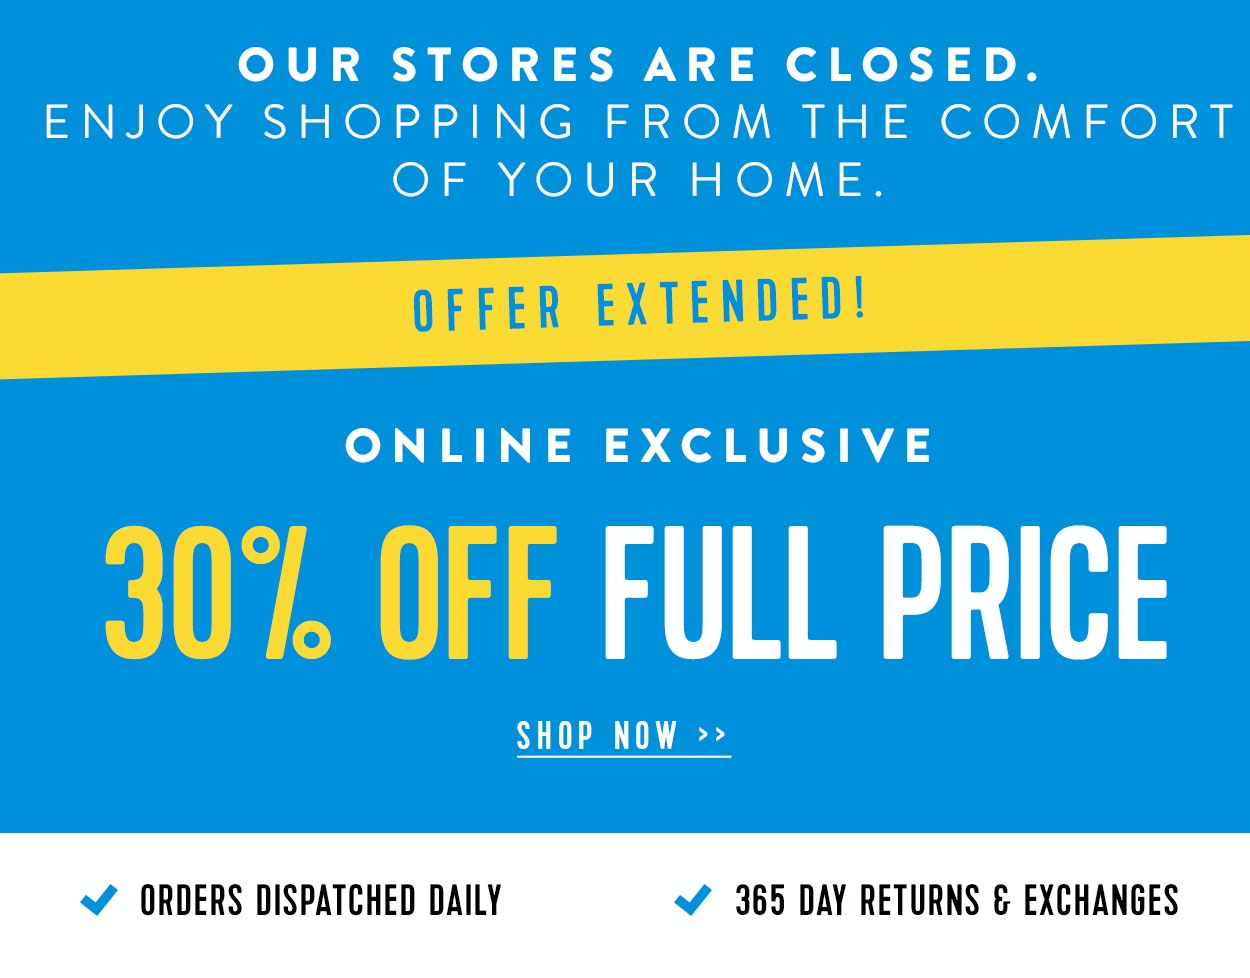 Shop Online Exclusive 30% off Full Price